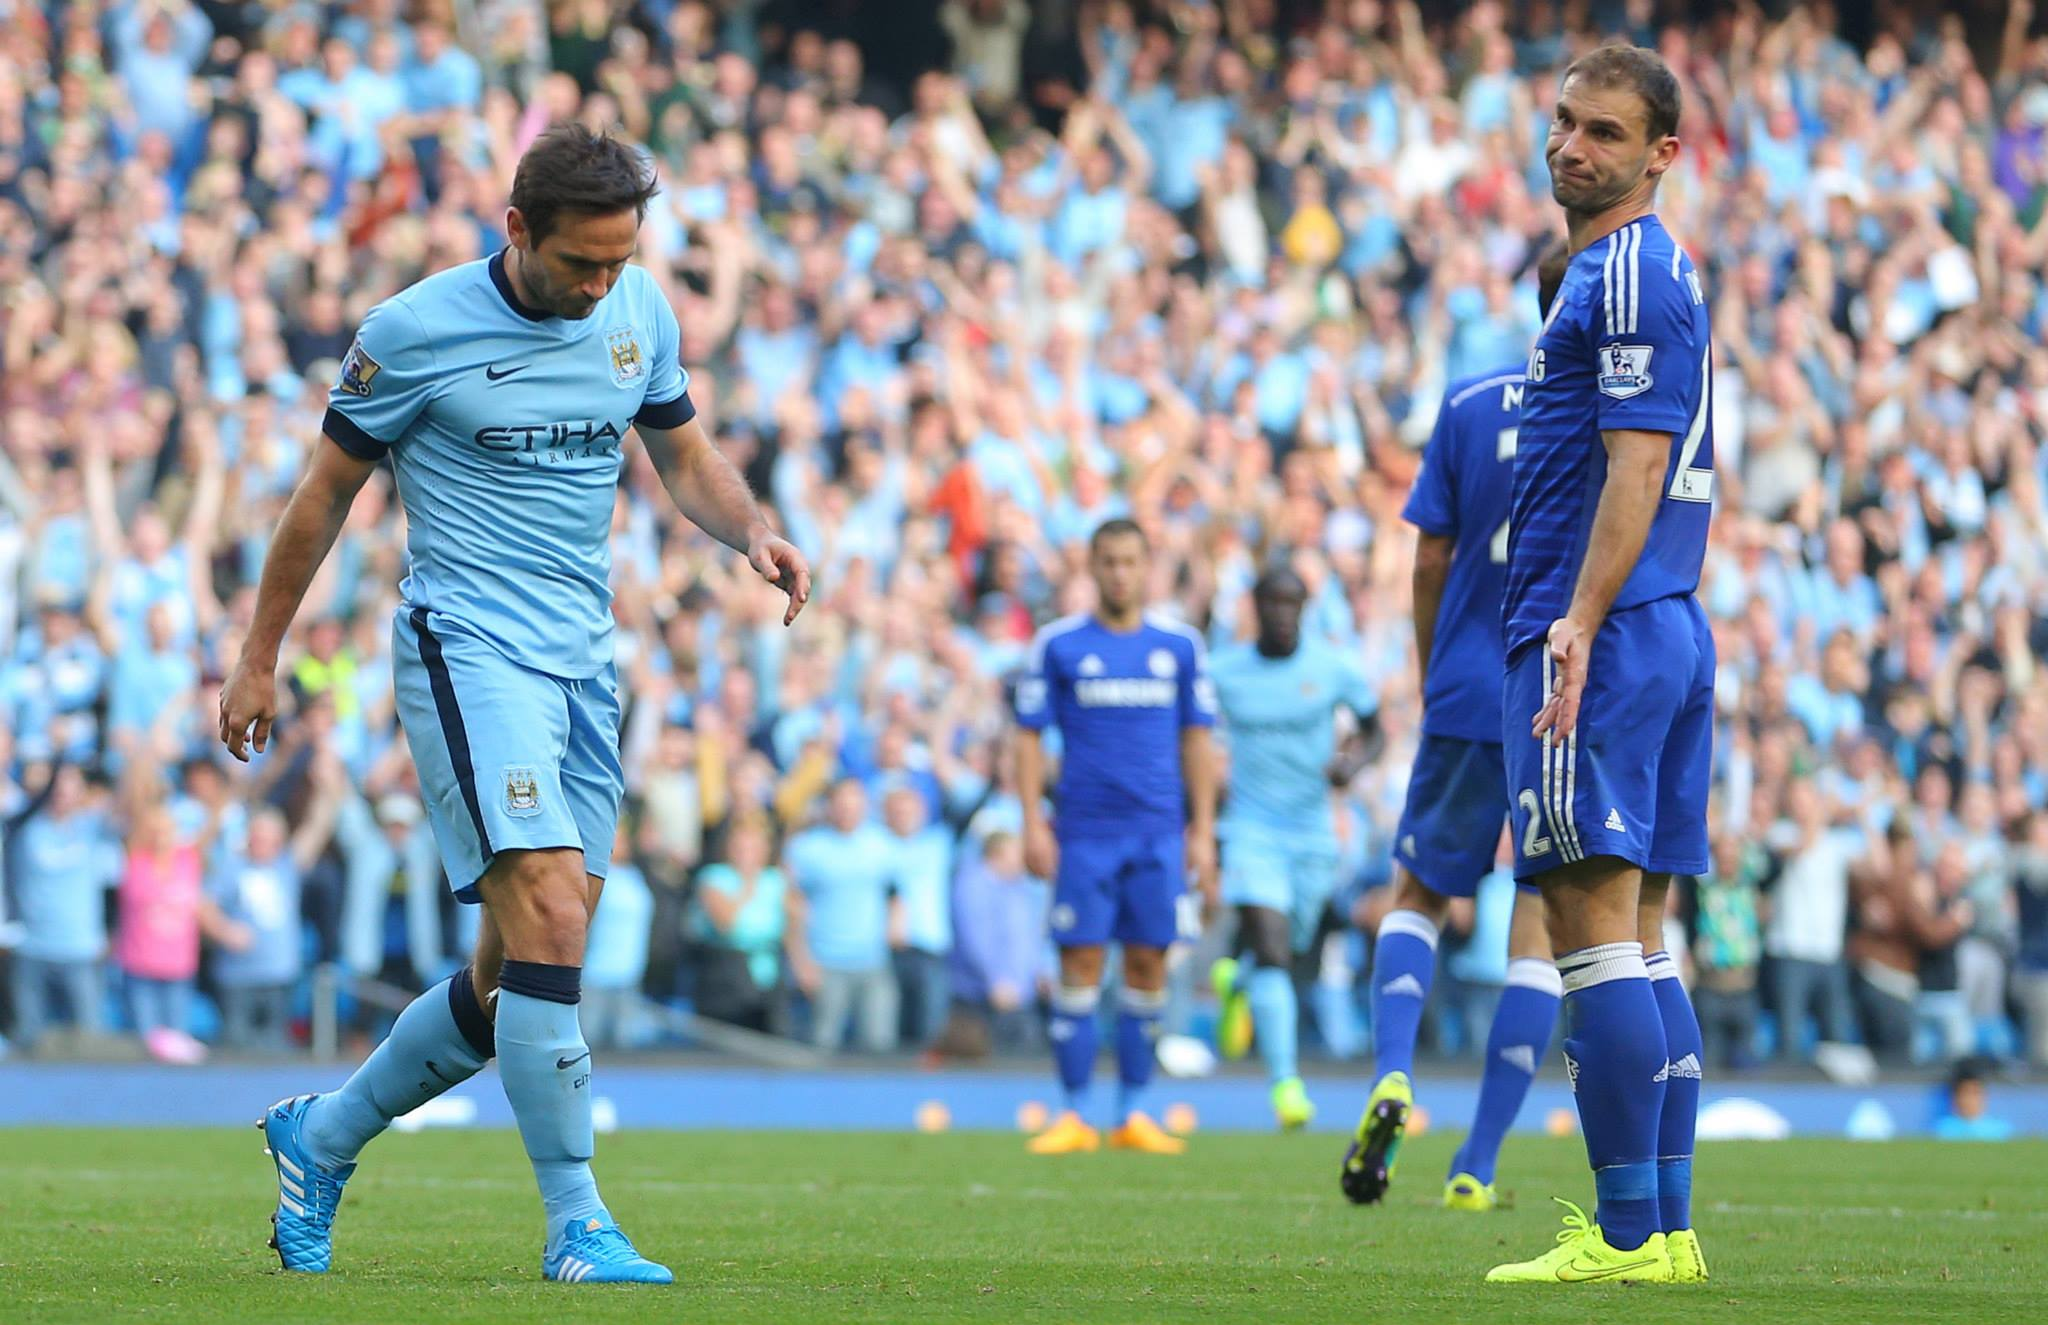 Frank Lampard s goal against Chelsea creates new record